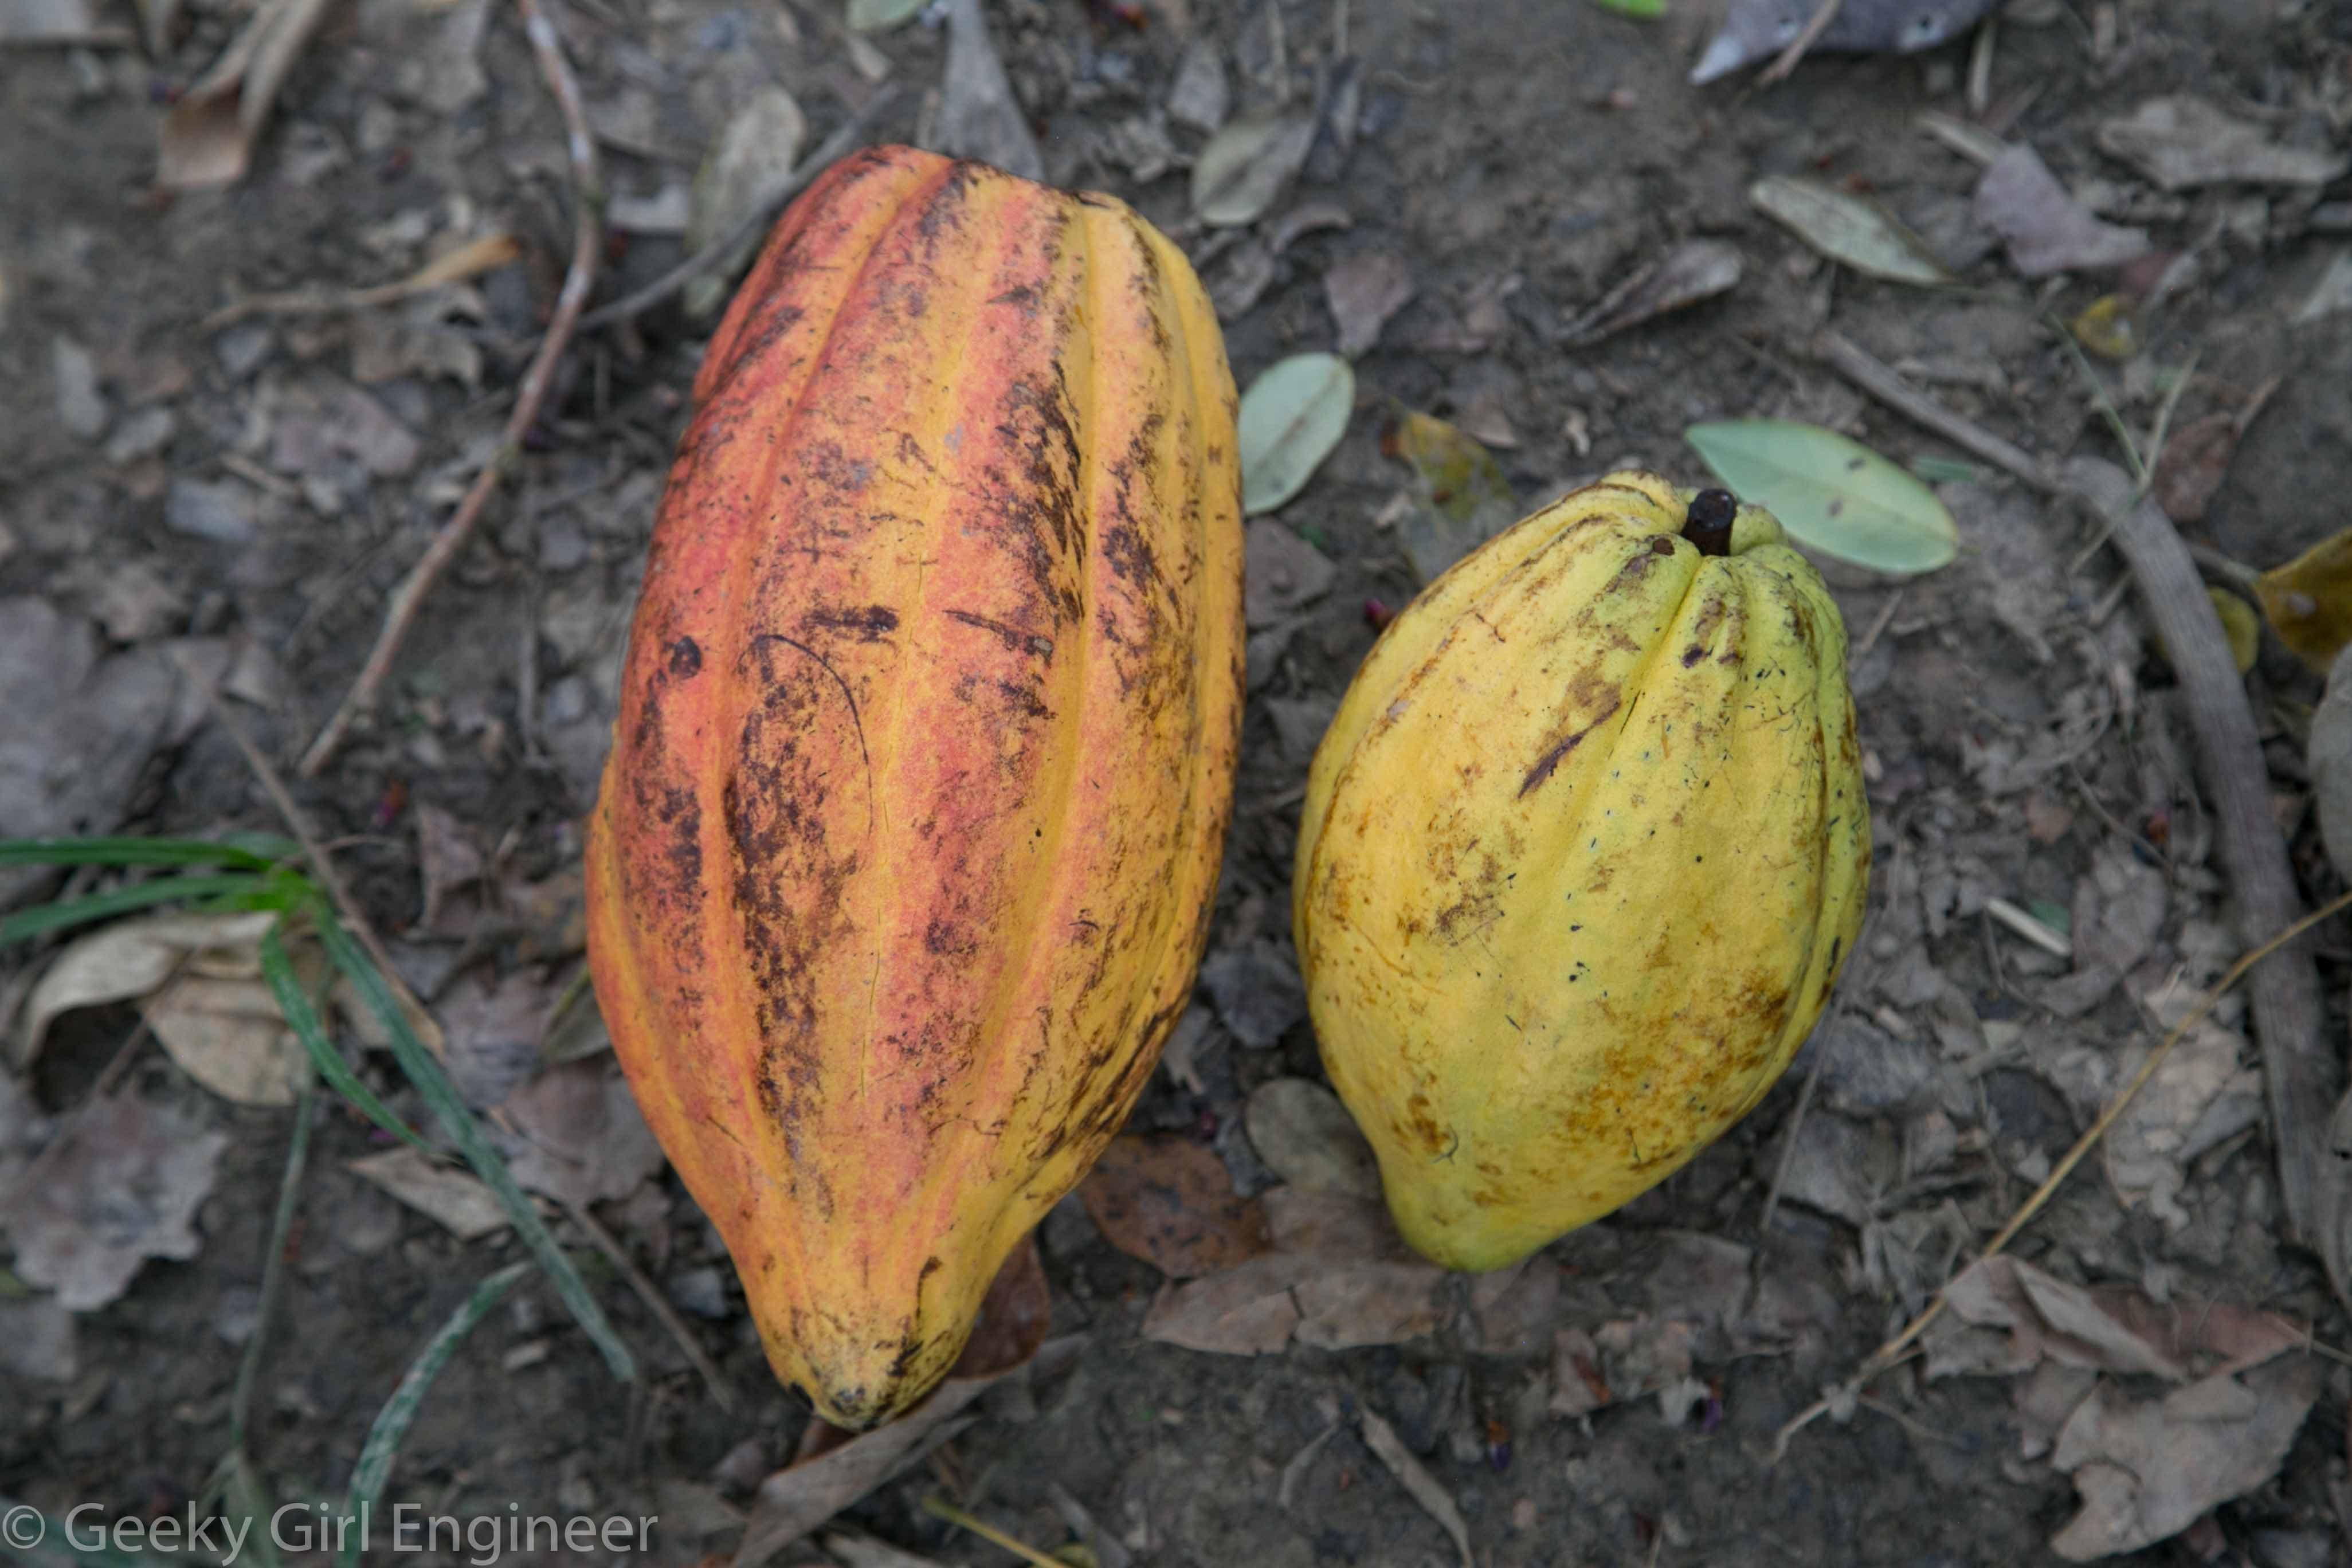 Ripe cacao fruit or seed pods